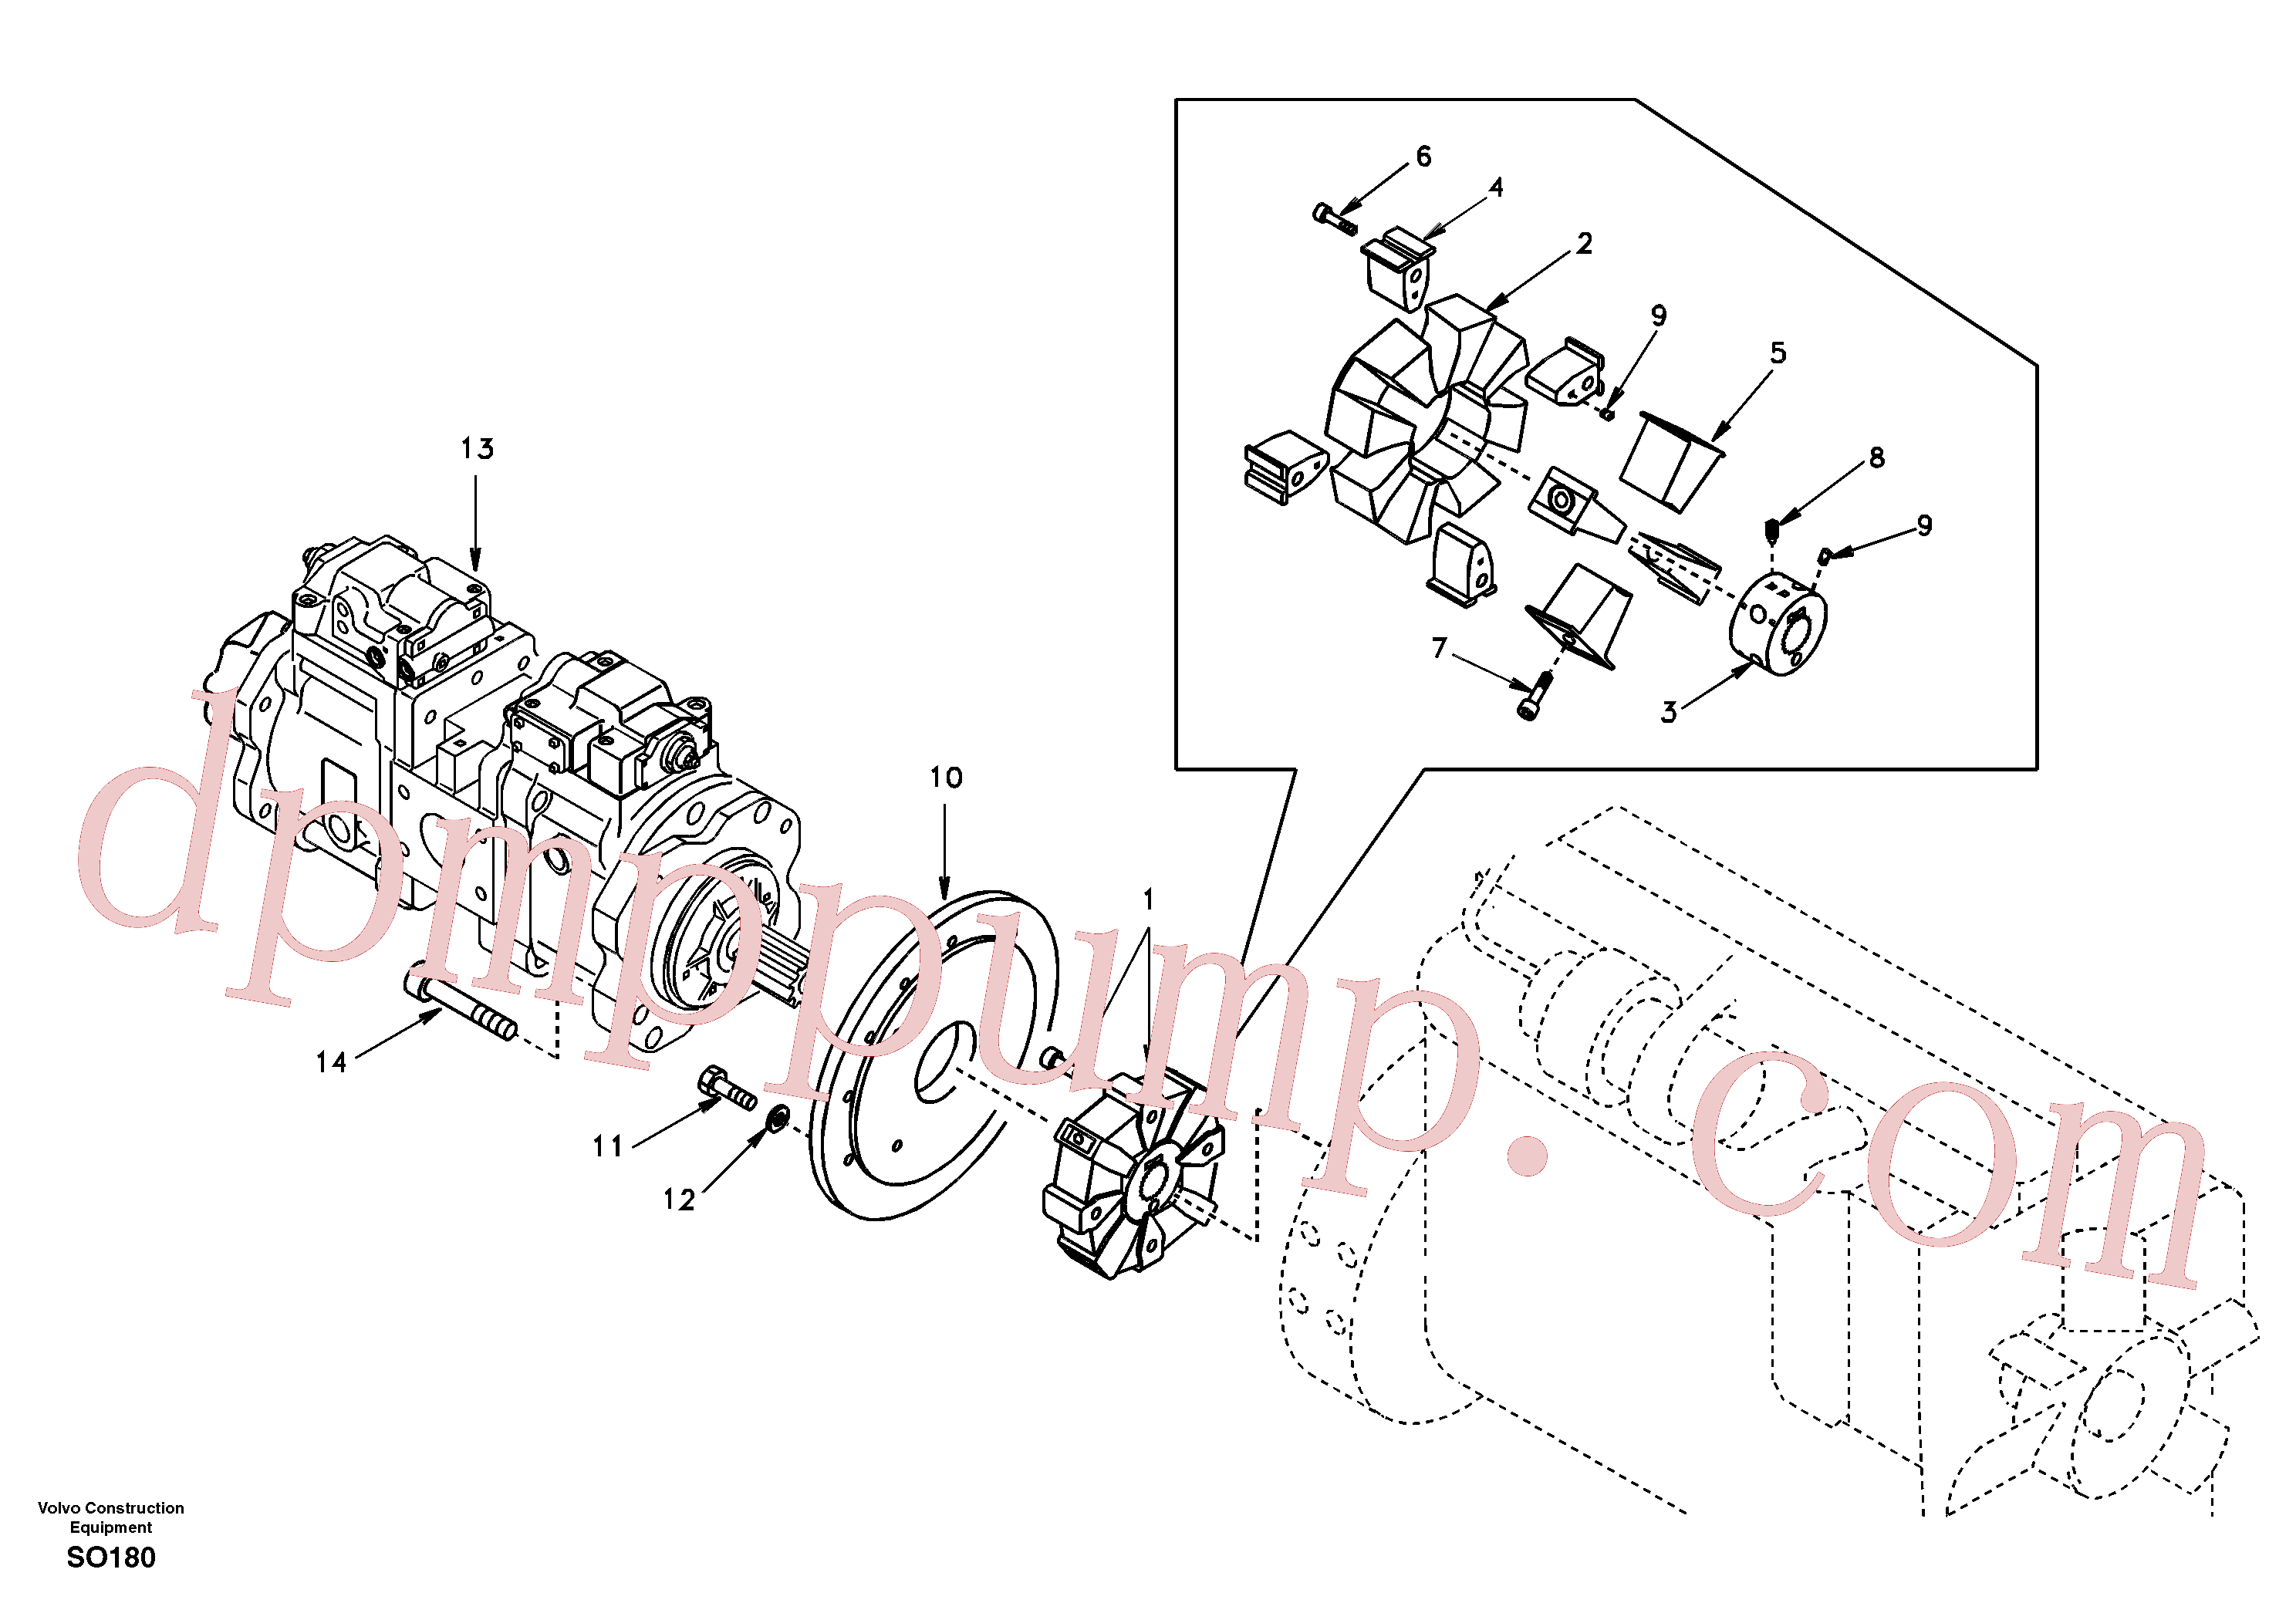 SA14509686 for Volvo Pump gearbox with assembling parts(SO180 assembly)